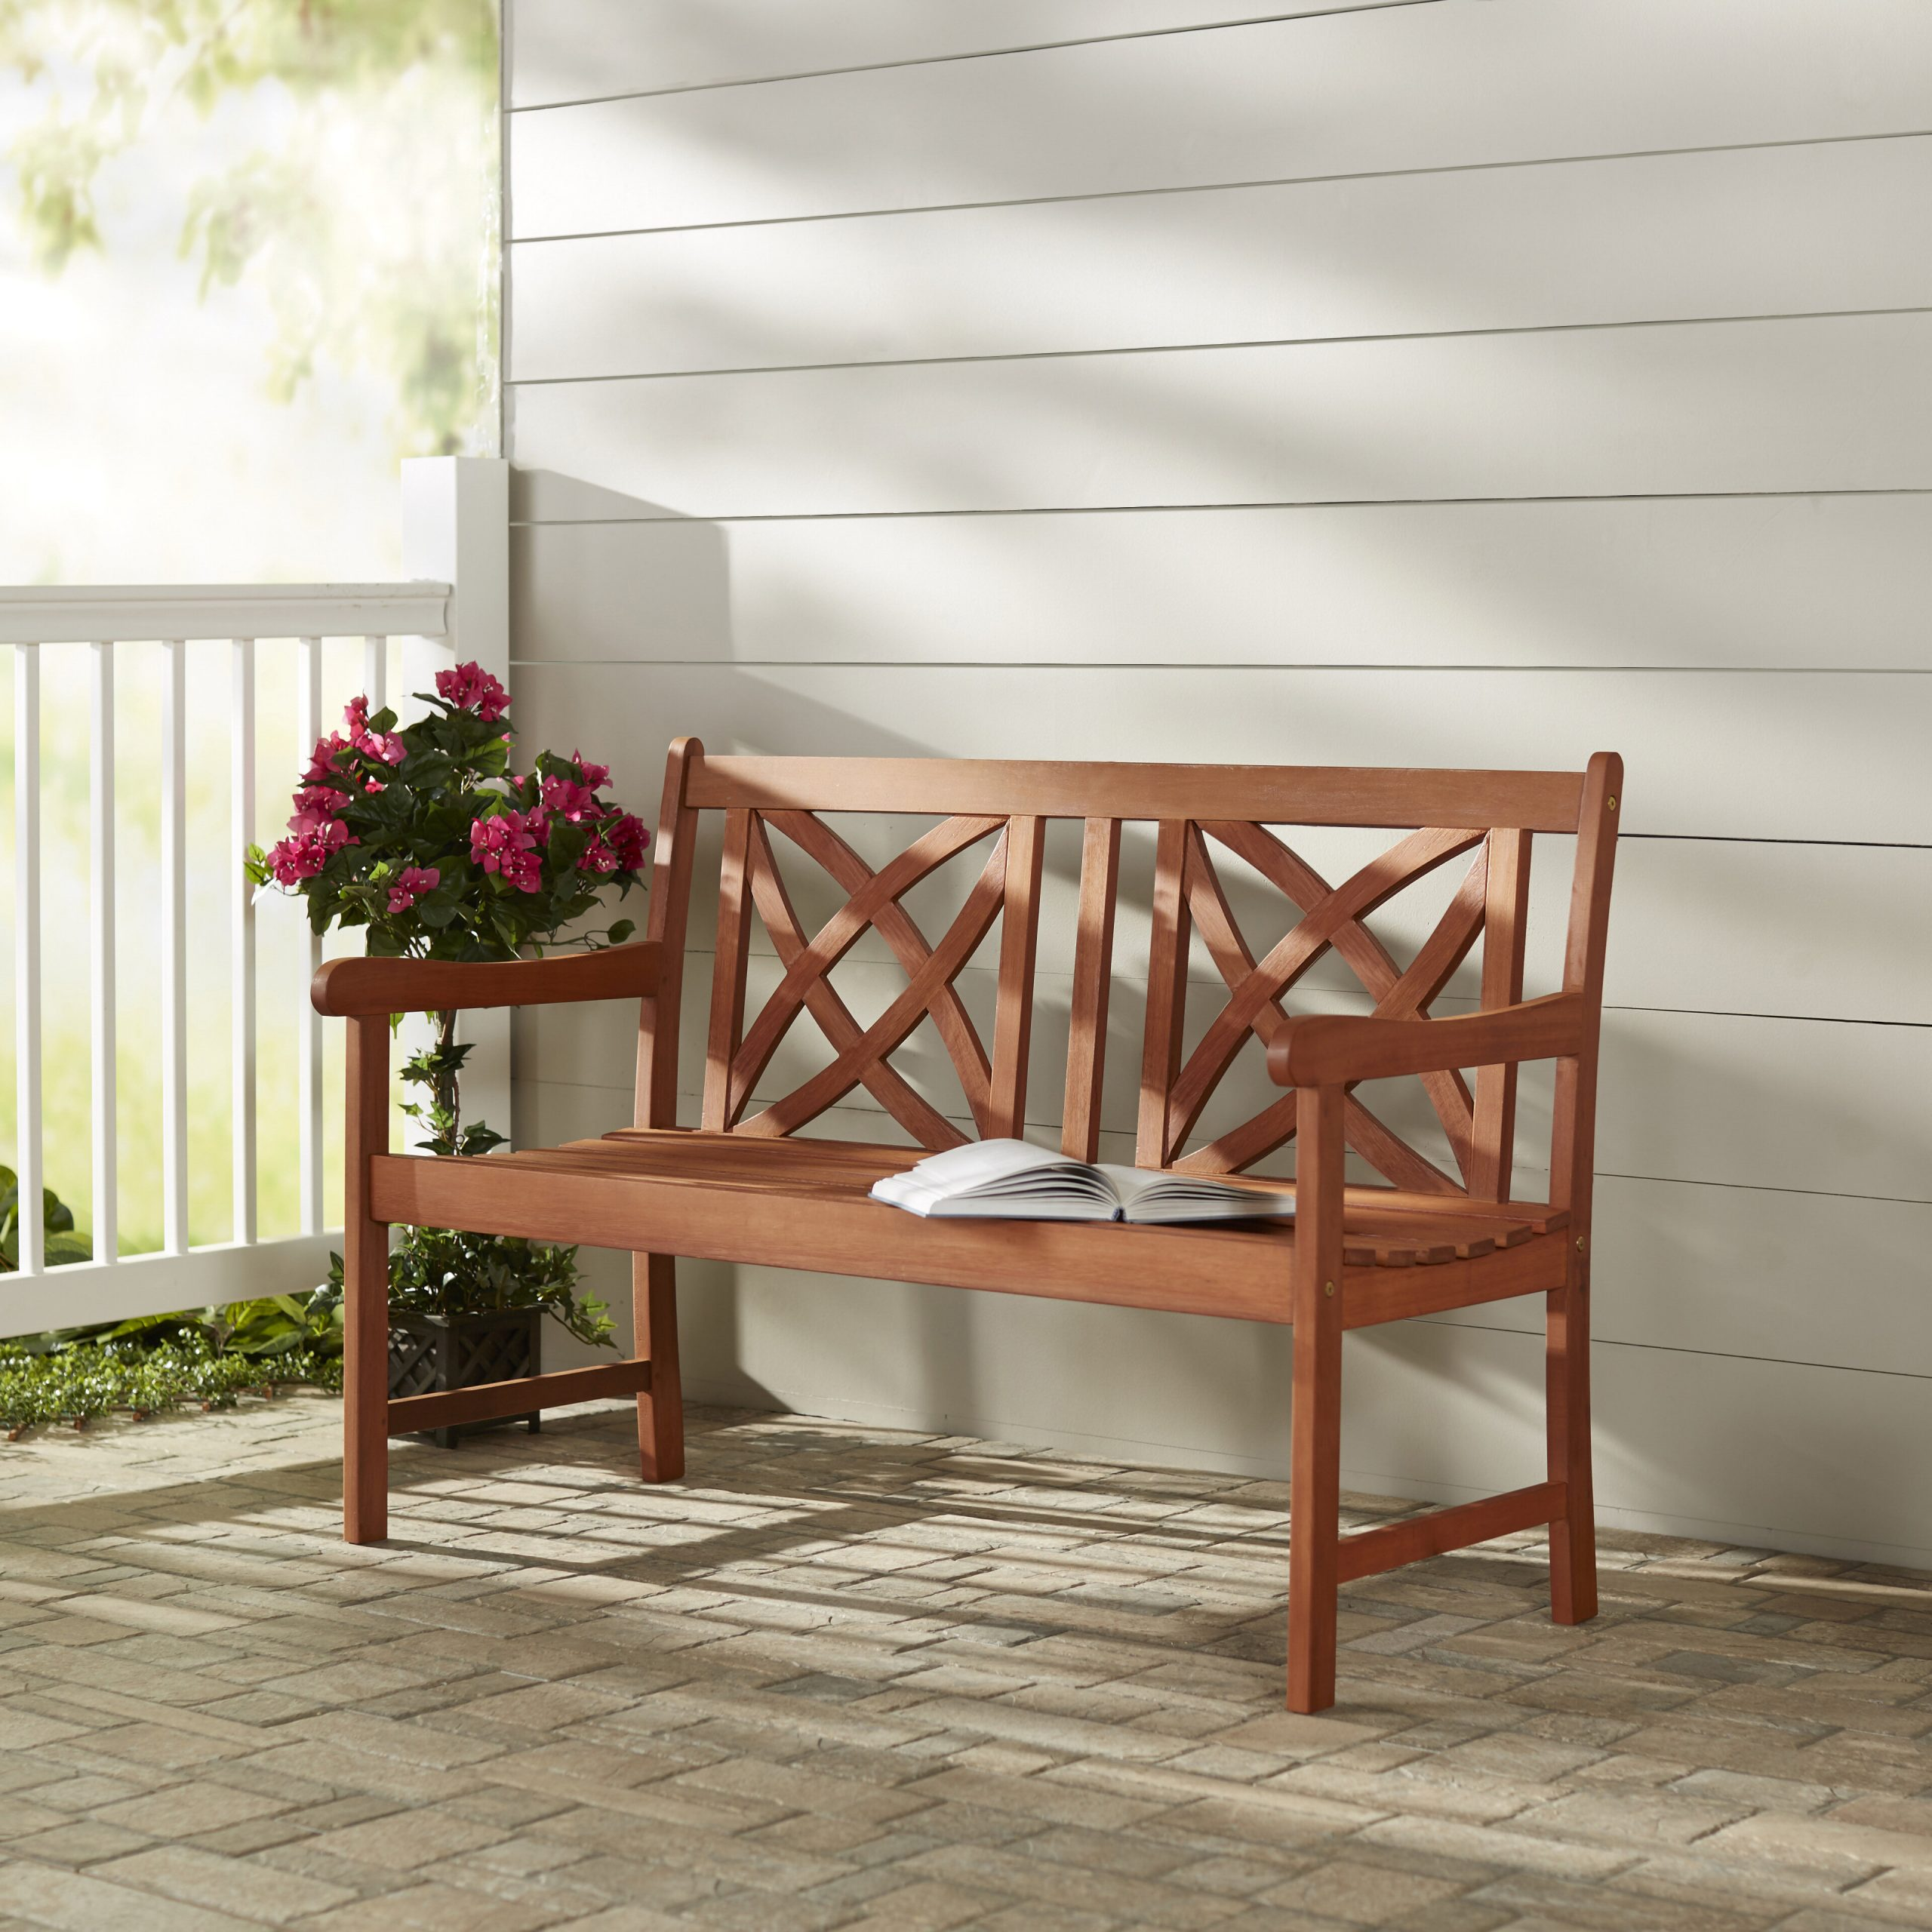 Garden Outdoor Benches You'Ll Love In 2020 | Wayfair Within Ahana Wooden Garden Benches (View 13 of 25)